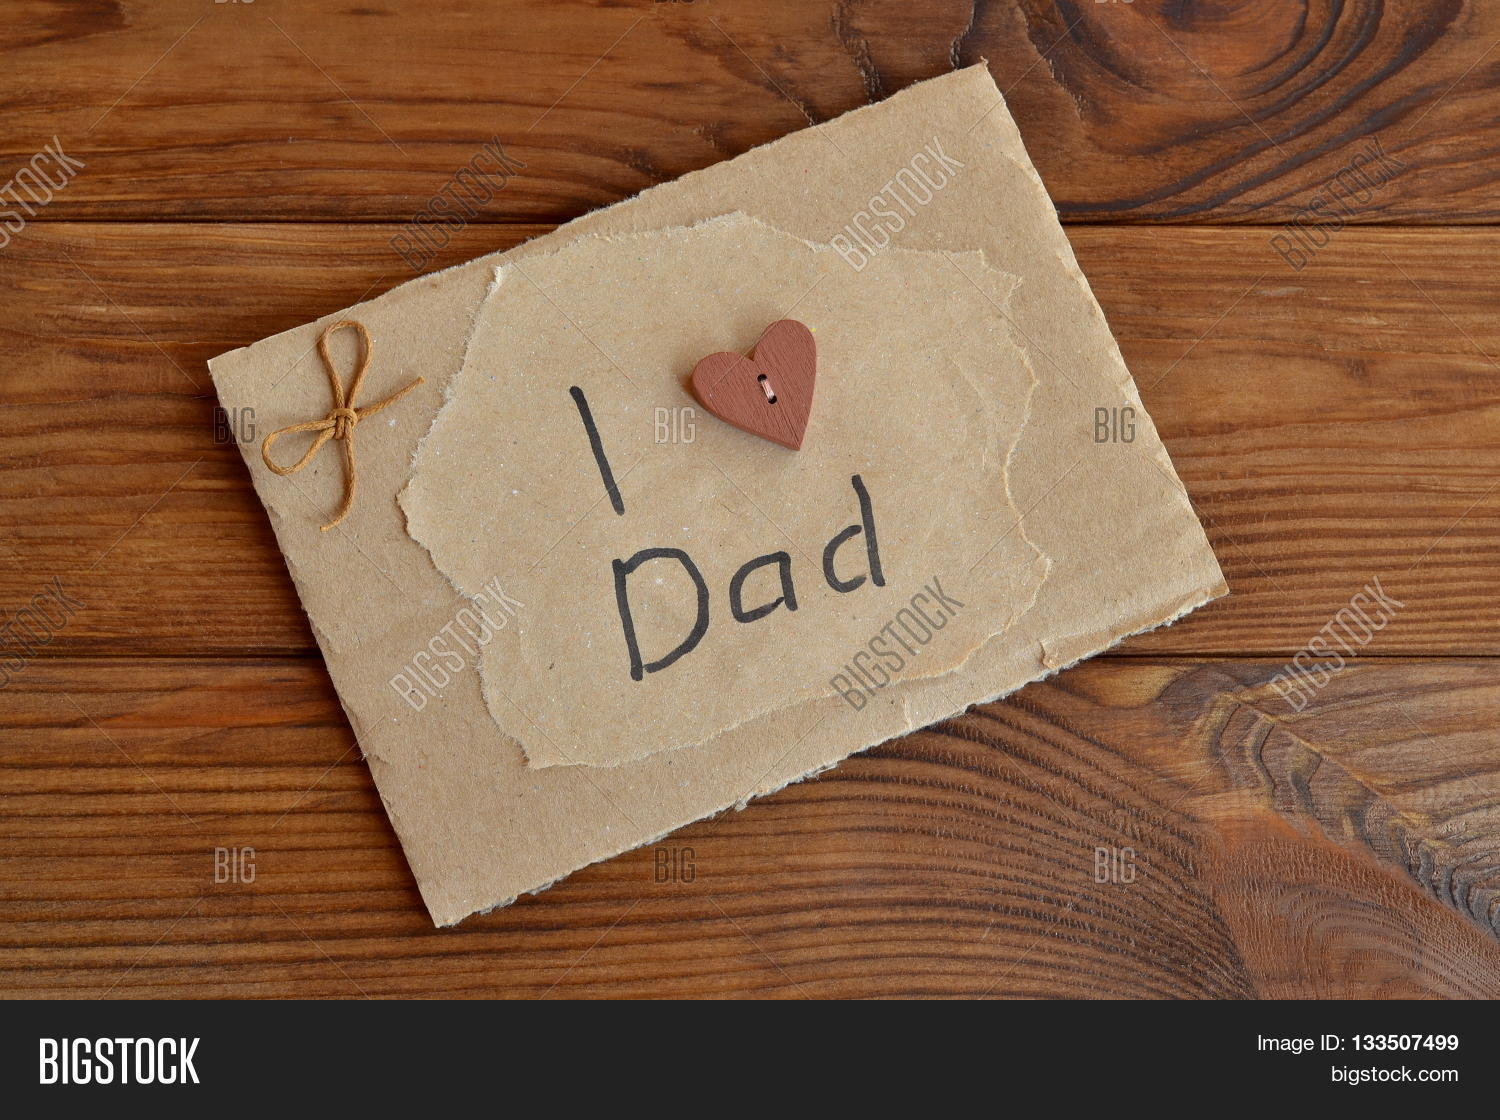 Homemade greeting card image photo free trial bigstock homemade greeting card on wooden table card with text i love dad card is m4hsunfo